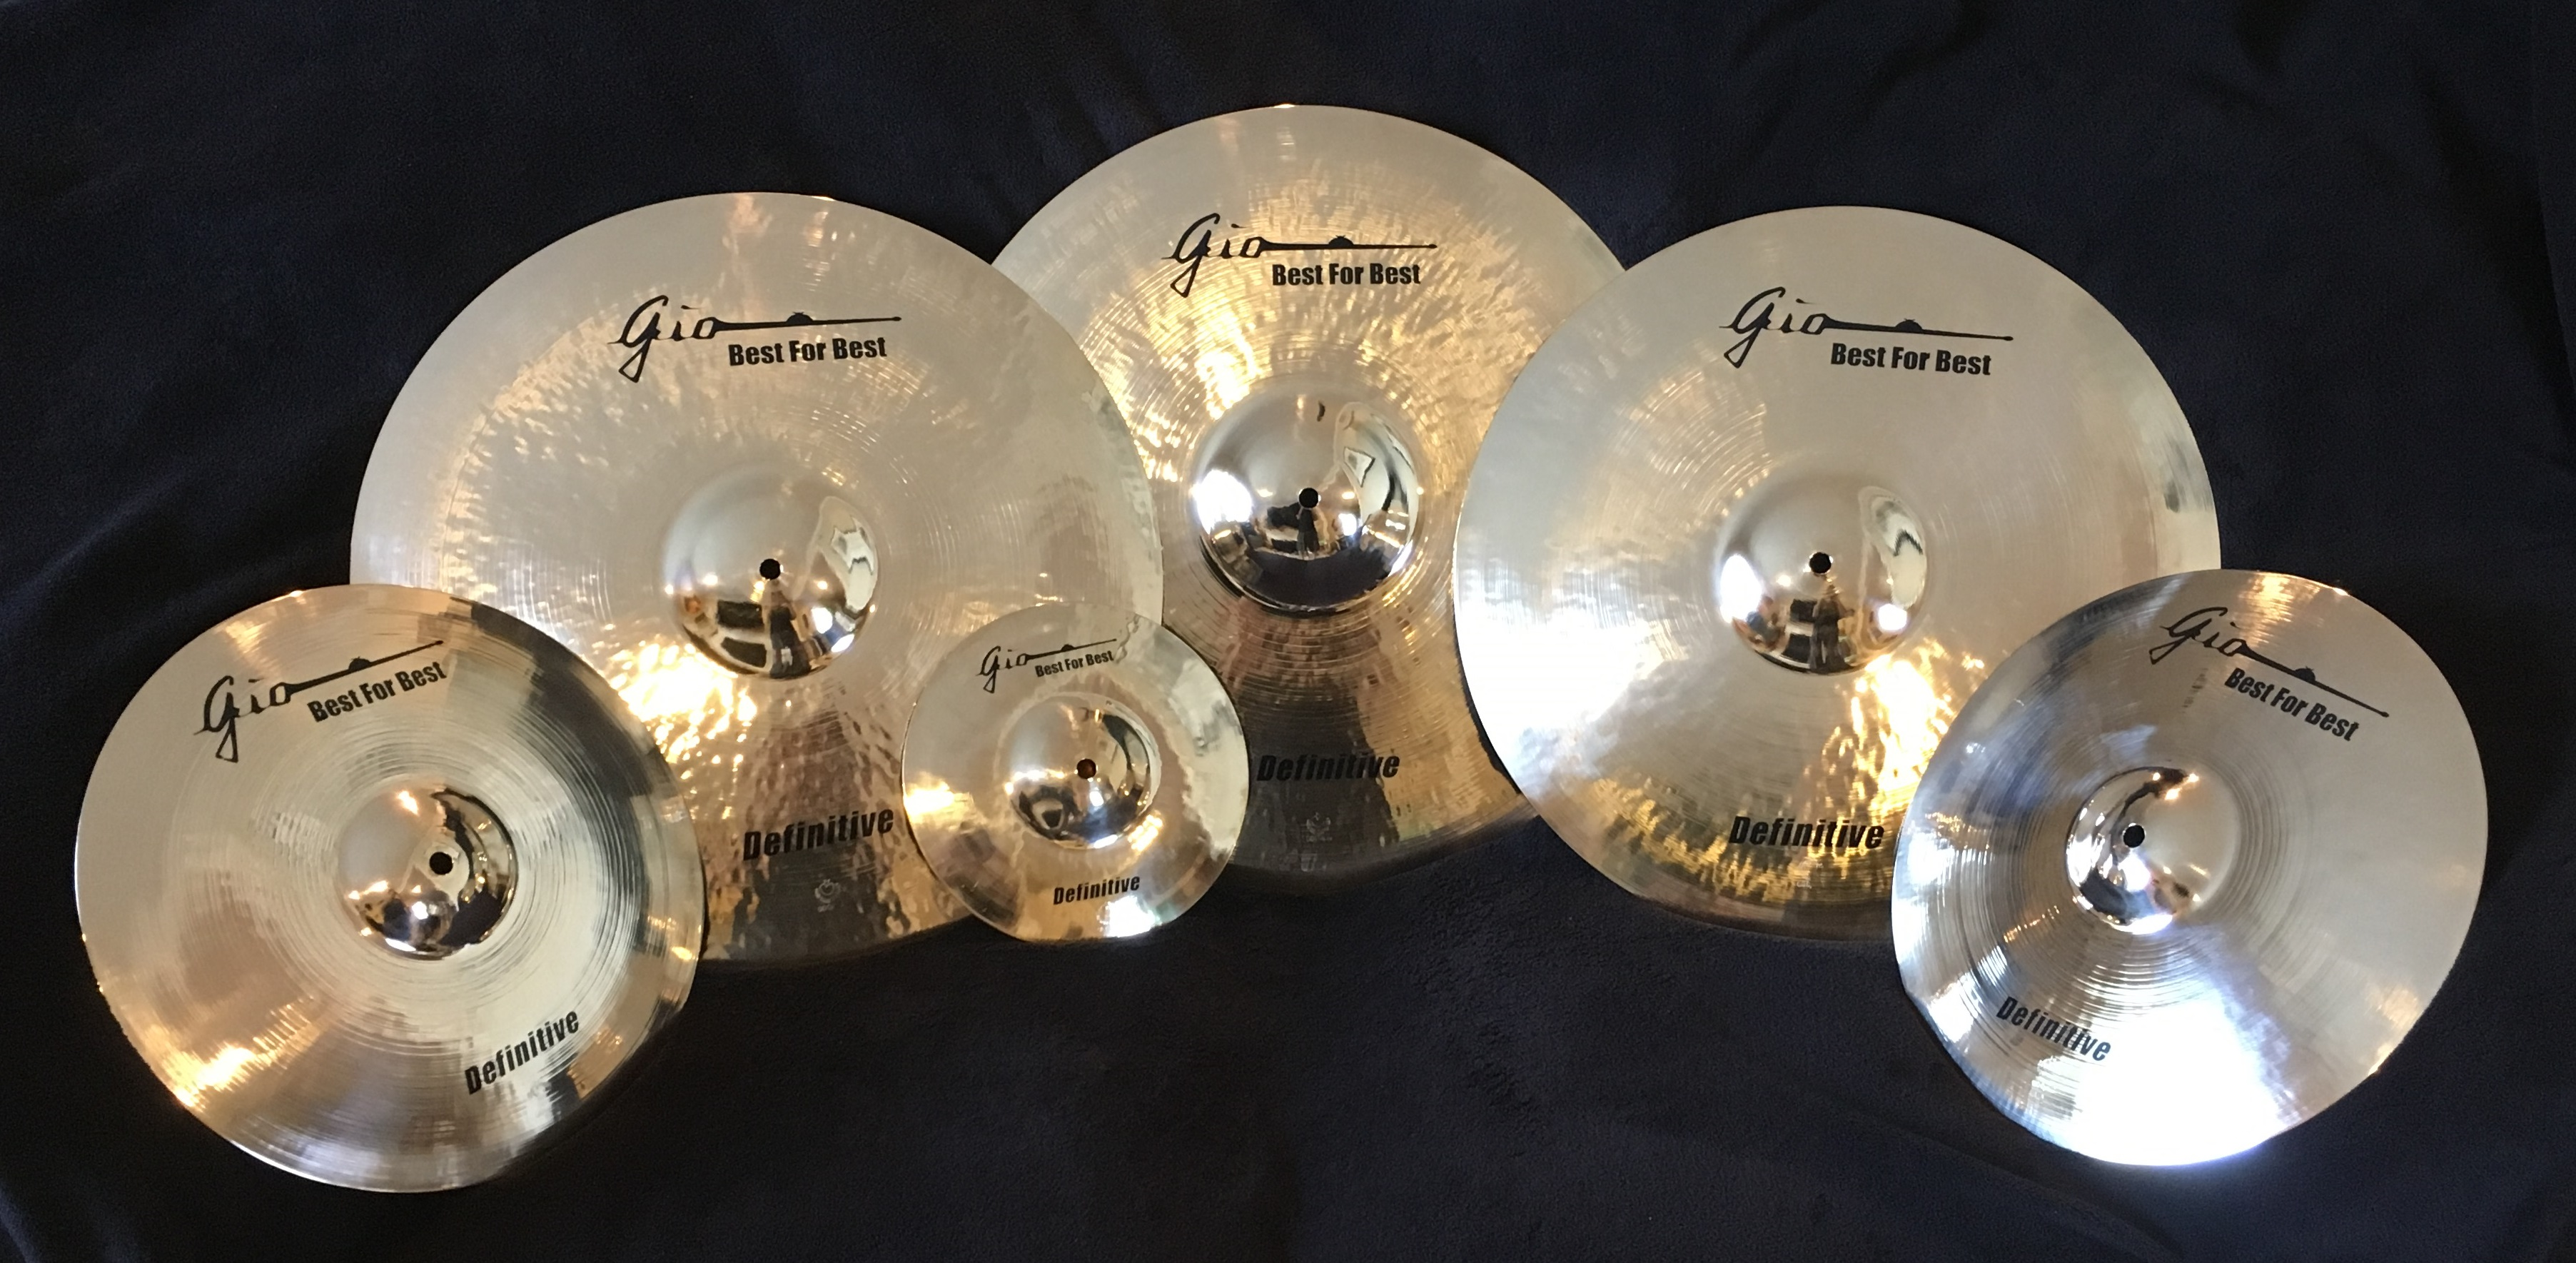 GIO Cymbals - Best For Best